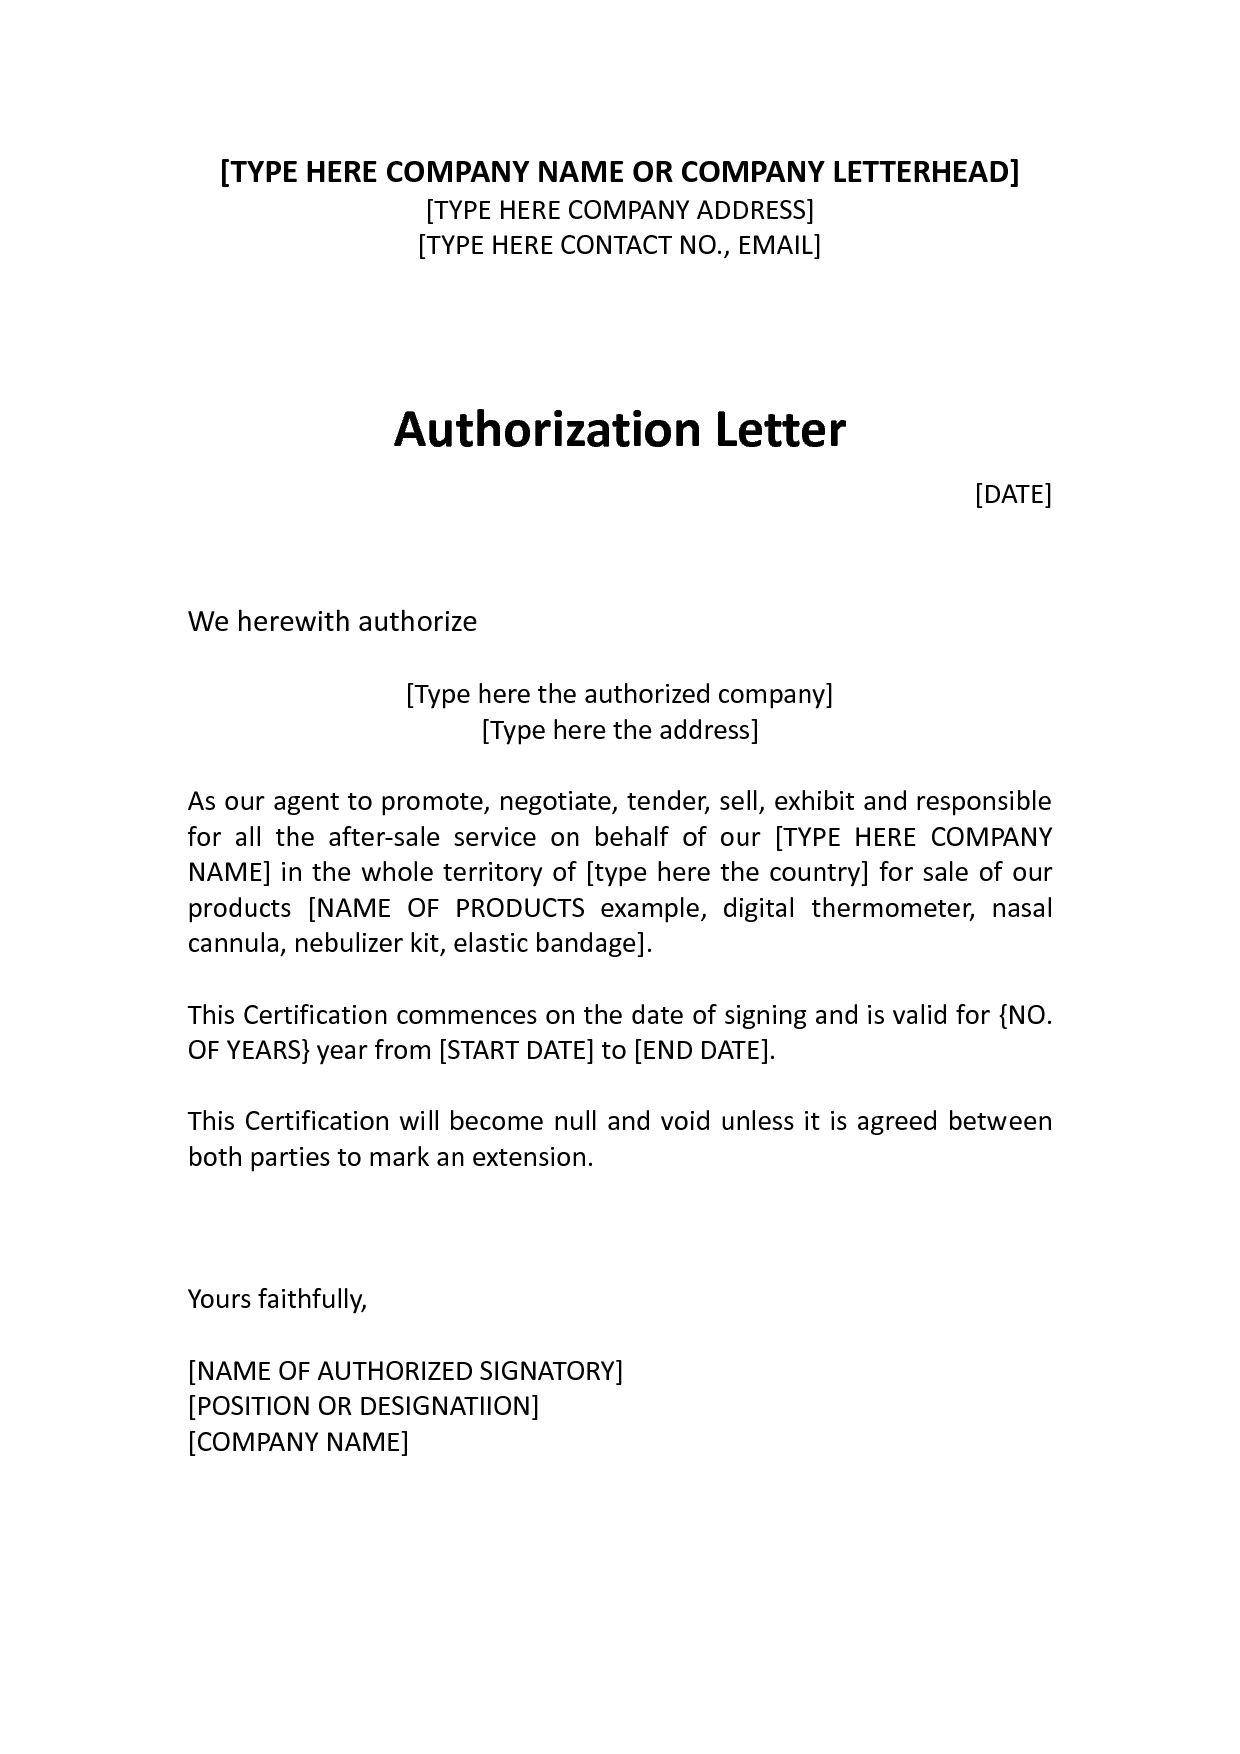 Letter Of Intent to Evict Template - Authorization Distributor Letter Sample Distributor Dealer